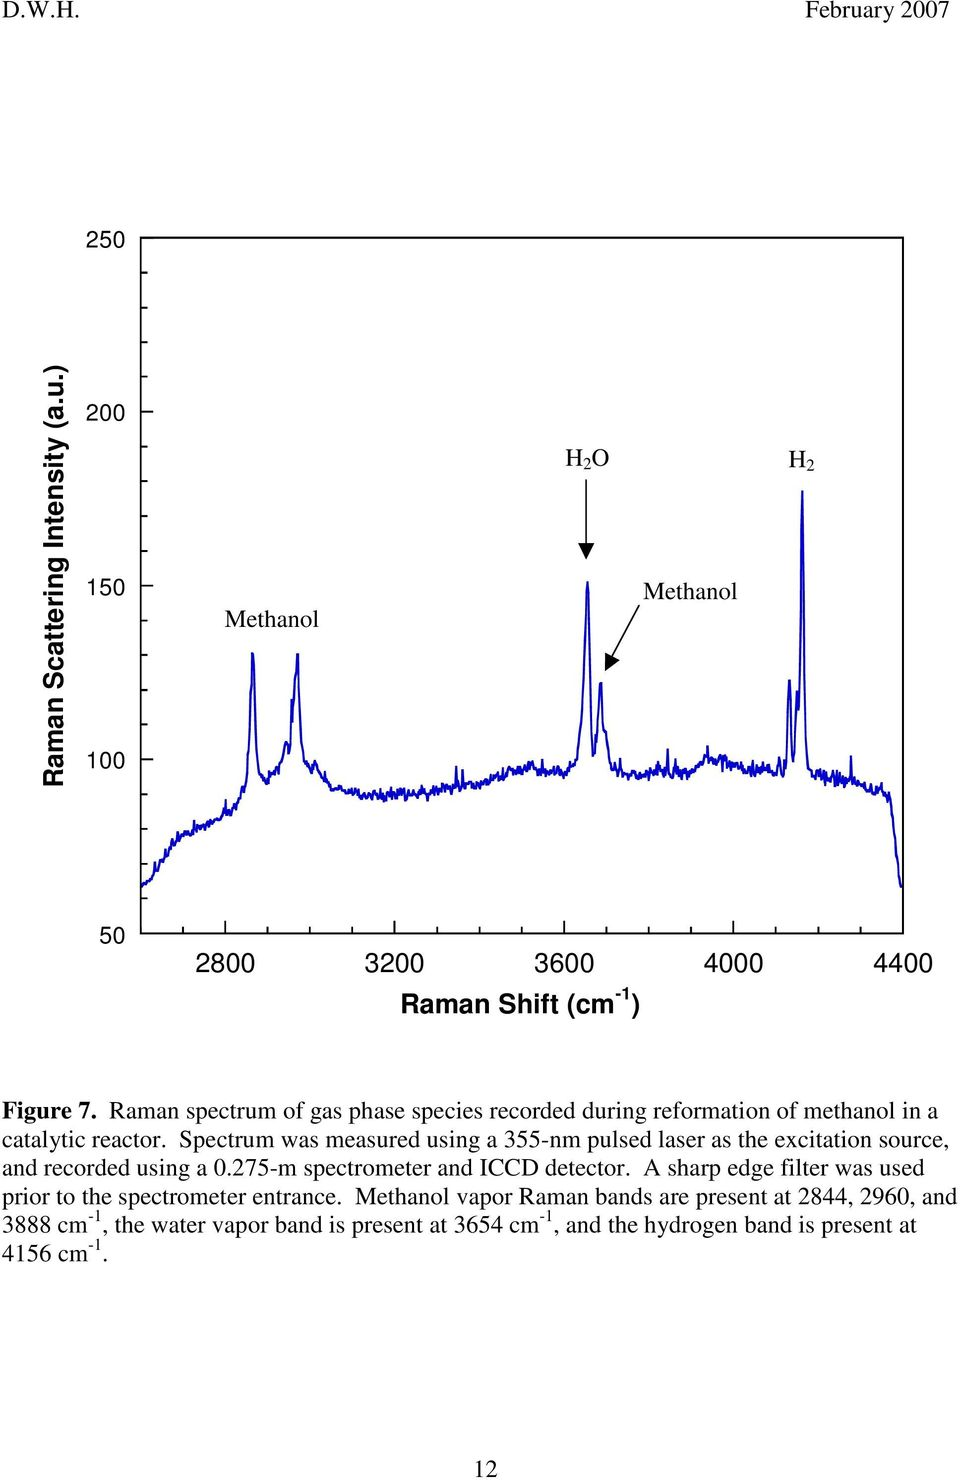 Spectrum was measured using a 355-nm pulsed laser as the excitation source, and recorded using a 0.275-m spectrometer and ICCD detector.